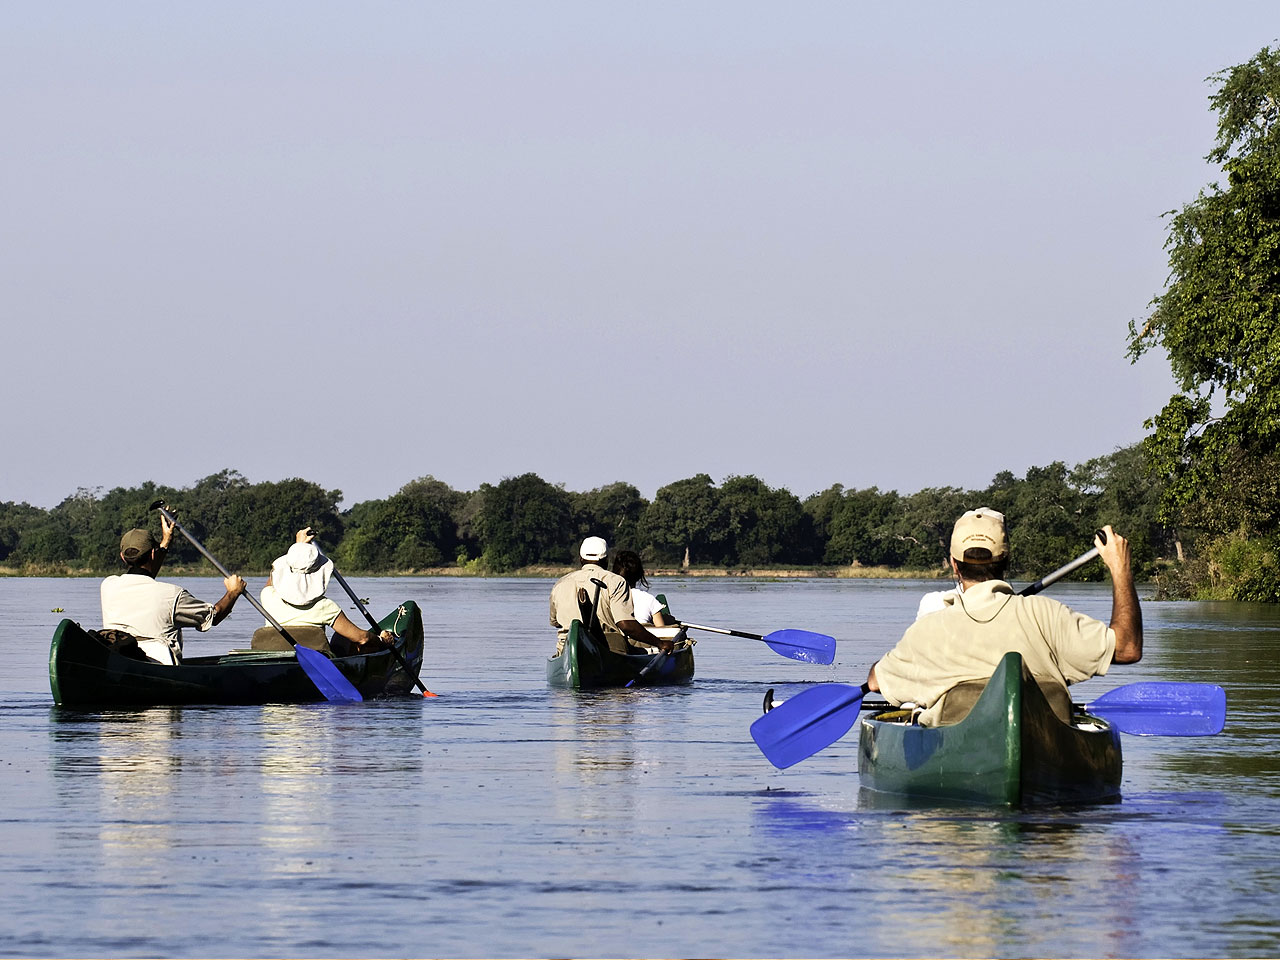 Three canoes with people rowing on a lake.